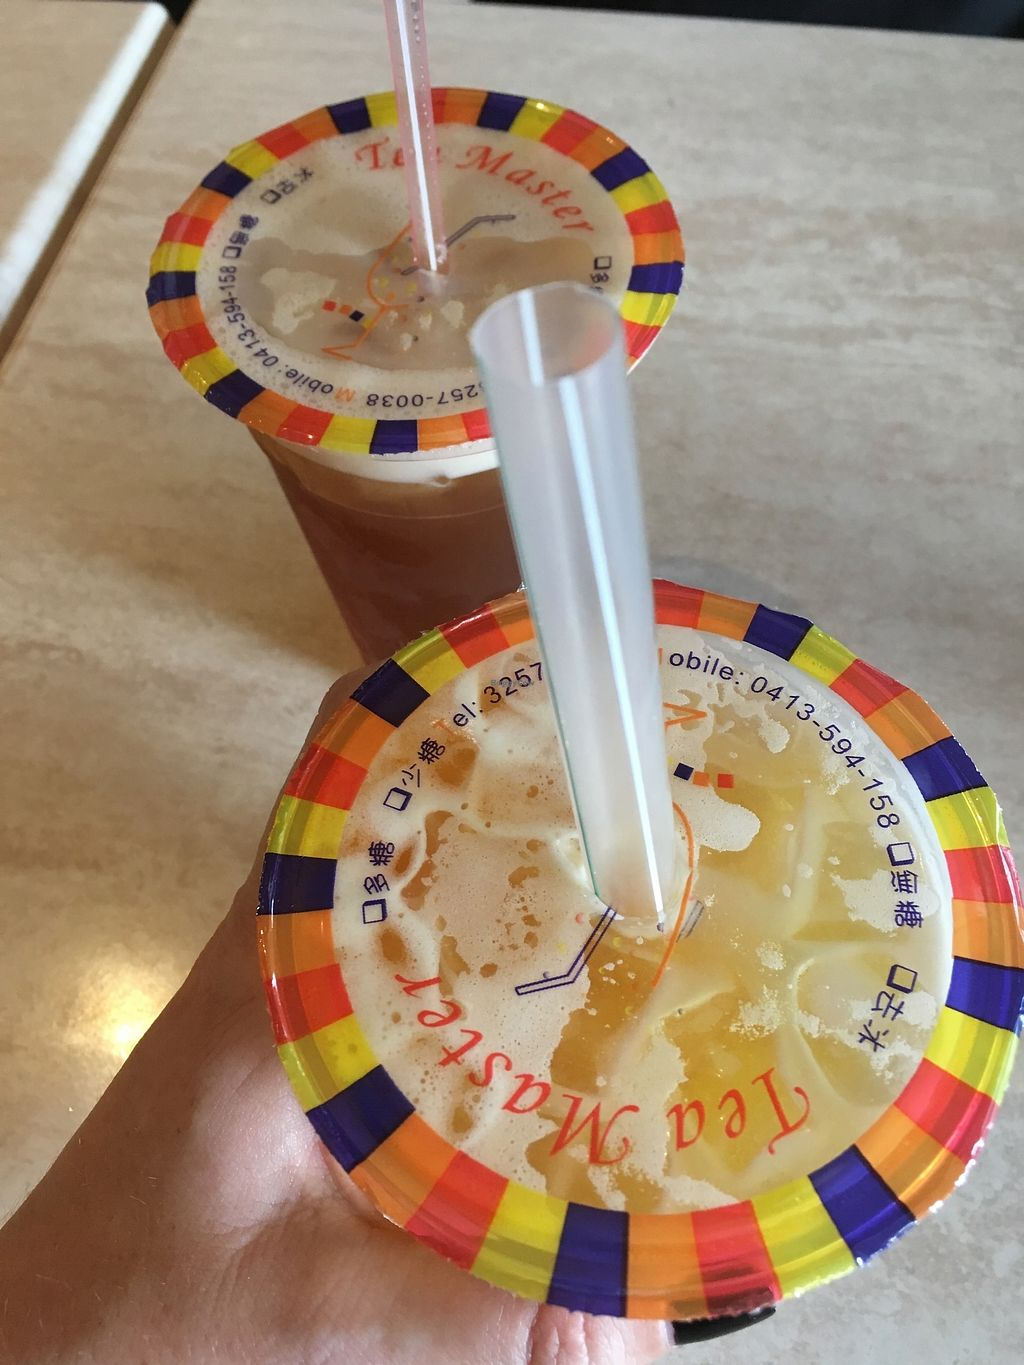 """Photo of Tea Master  by <a href=""""/members/profile/jojoinbrighton"""">jojoinbrighton</a> <br/>Bubble tea! <br/> August 6, 2017  - <a href='/contact/abuse/image/17221/289684'>Report</a>"""